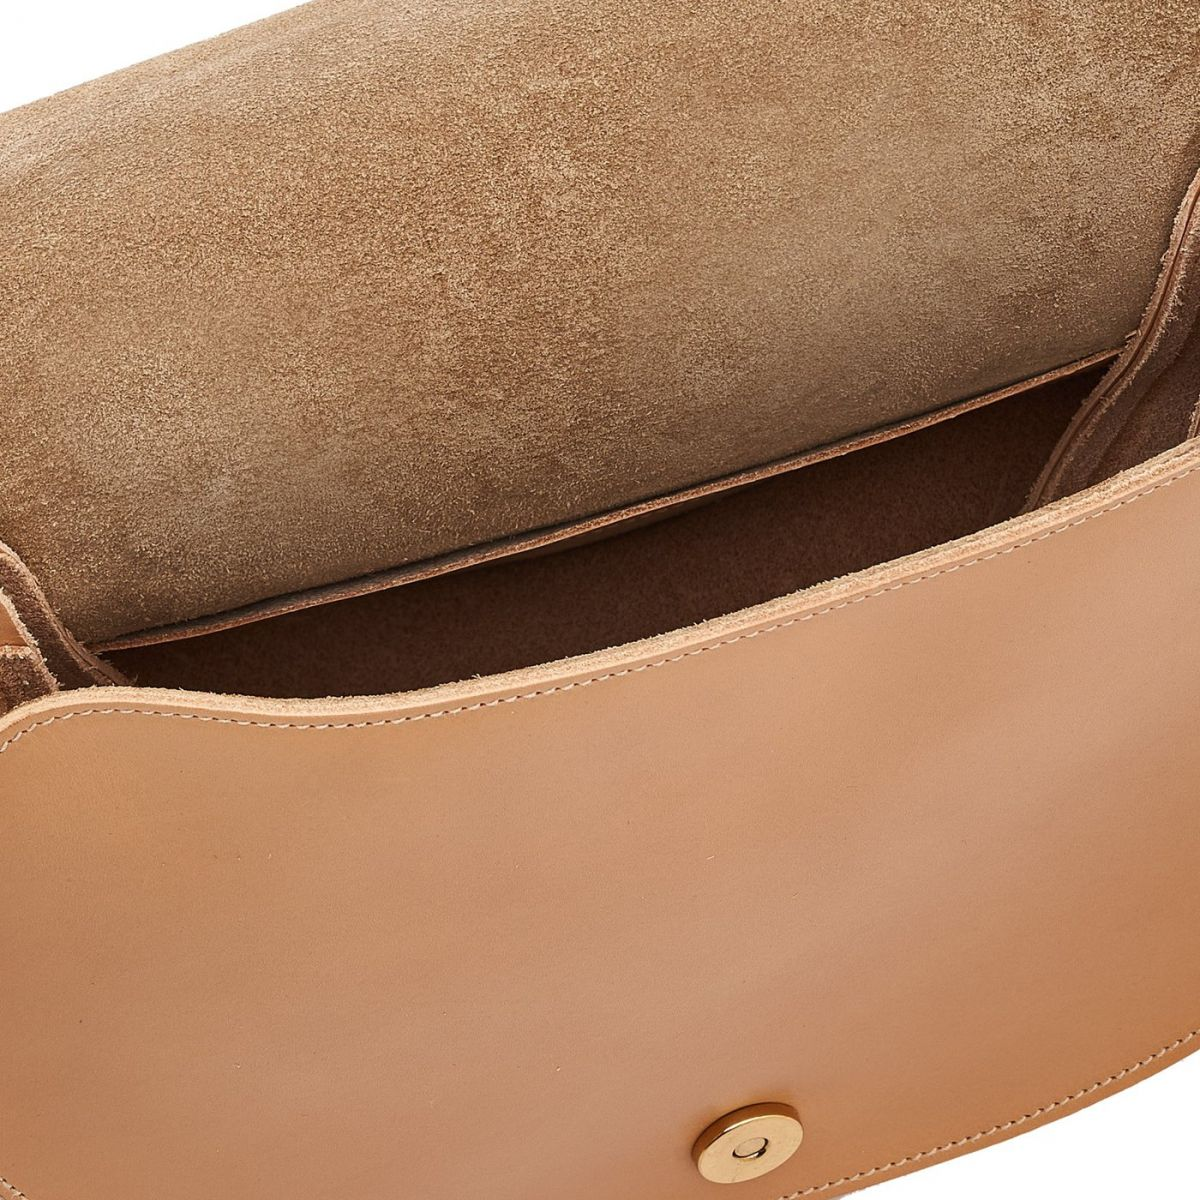 Women's Crossbody Bag Consuelo in Cowhide Leather BCR193 color Natural | Details